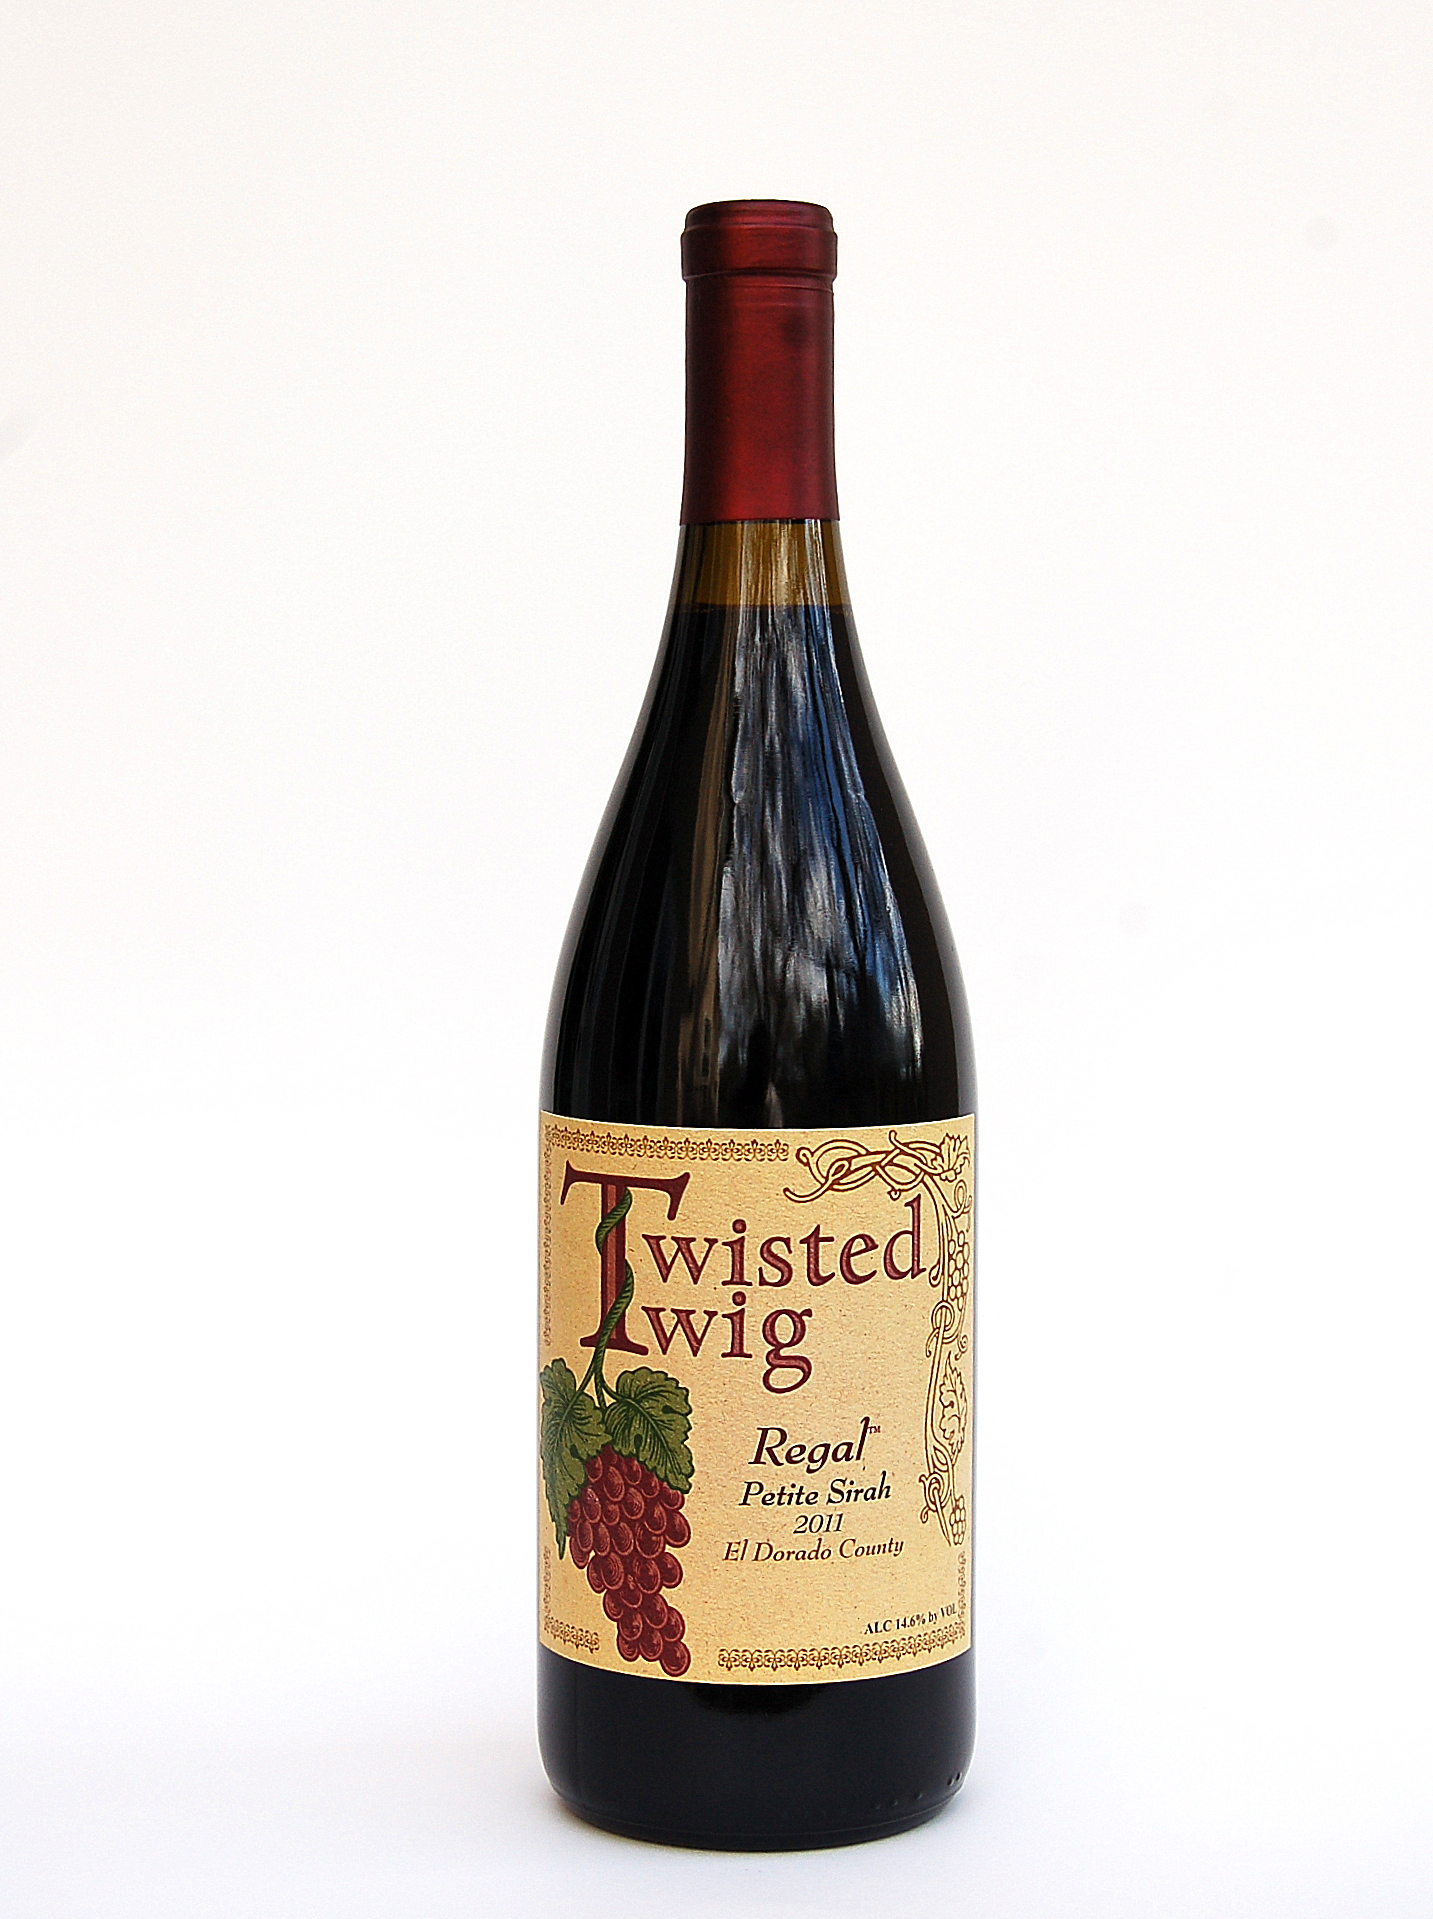 Twisted Twig Regal Petite Sirah 2011